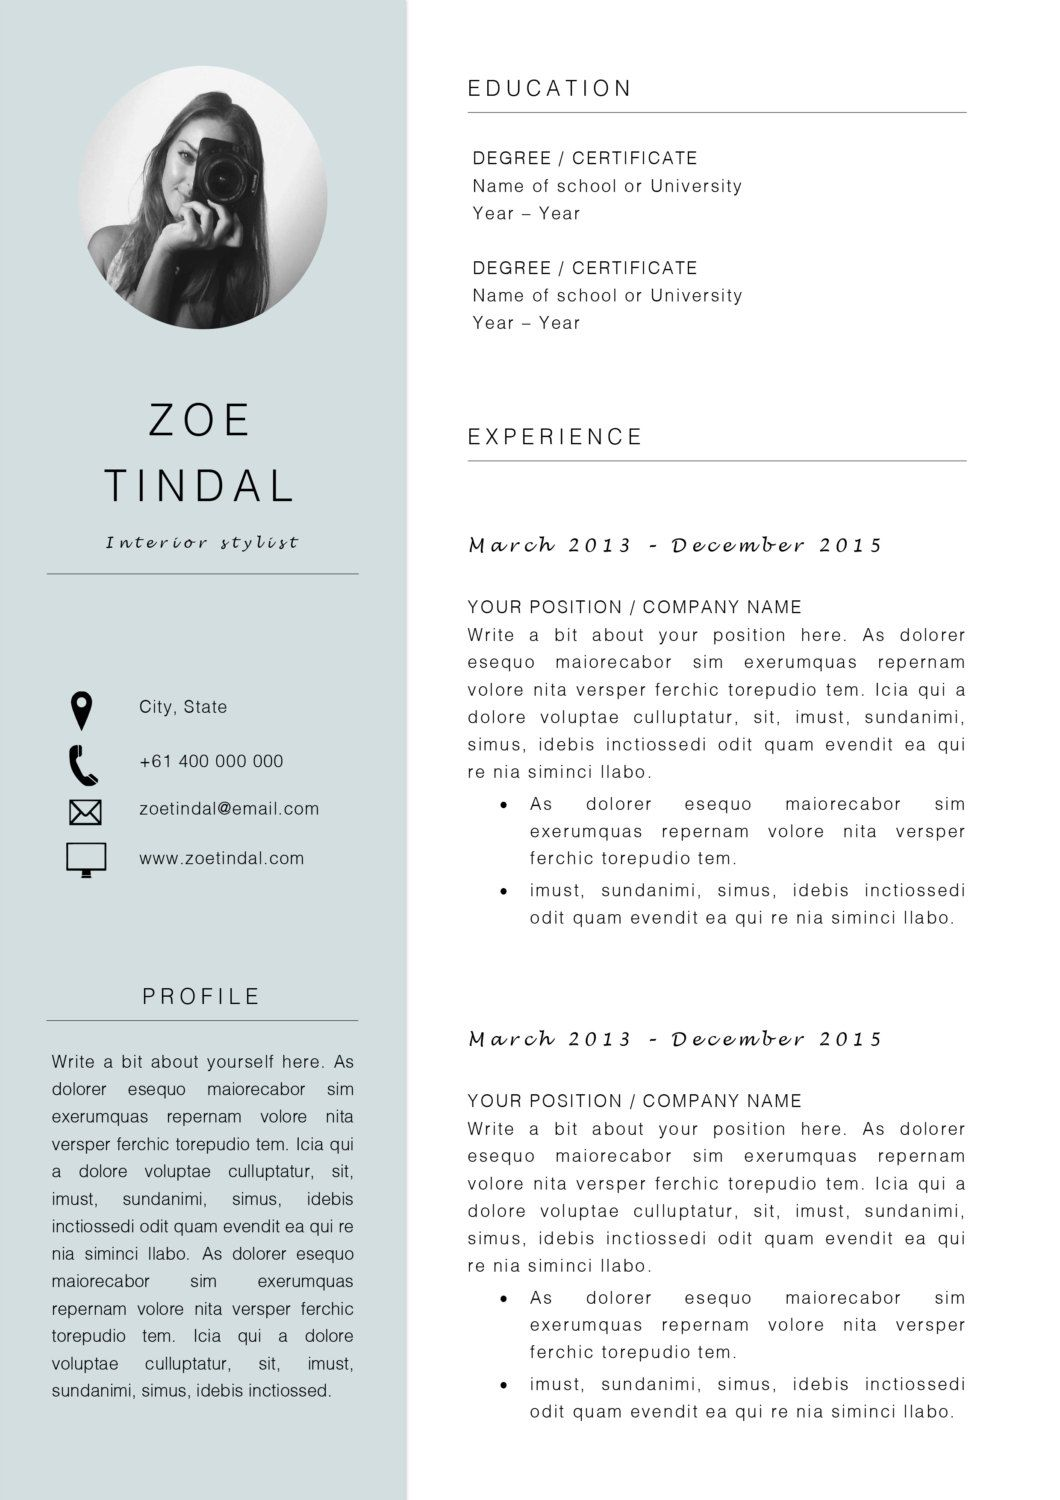 Resume and Cover letter template Professional Microsoft